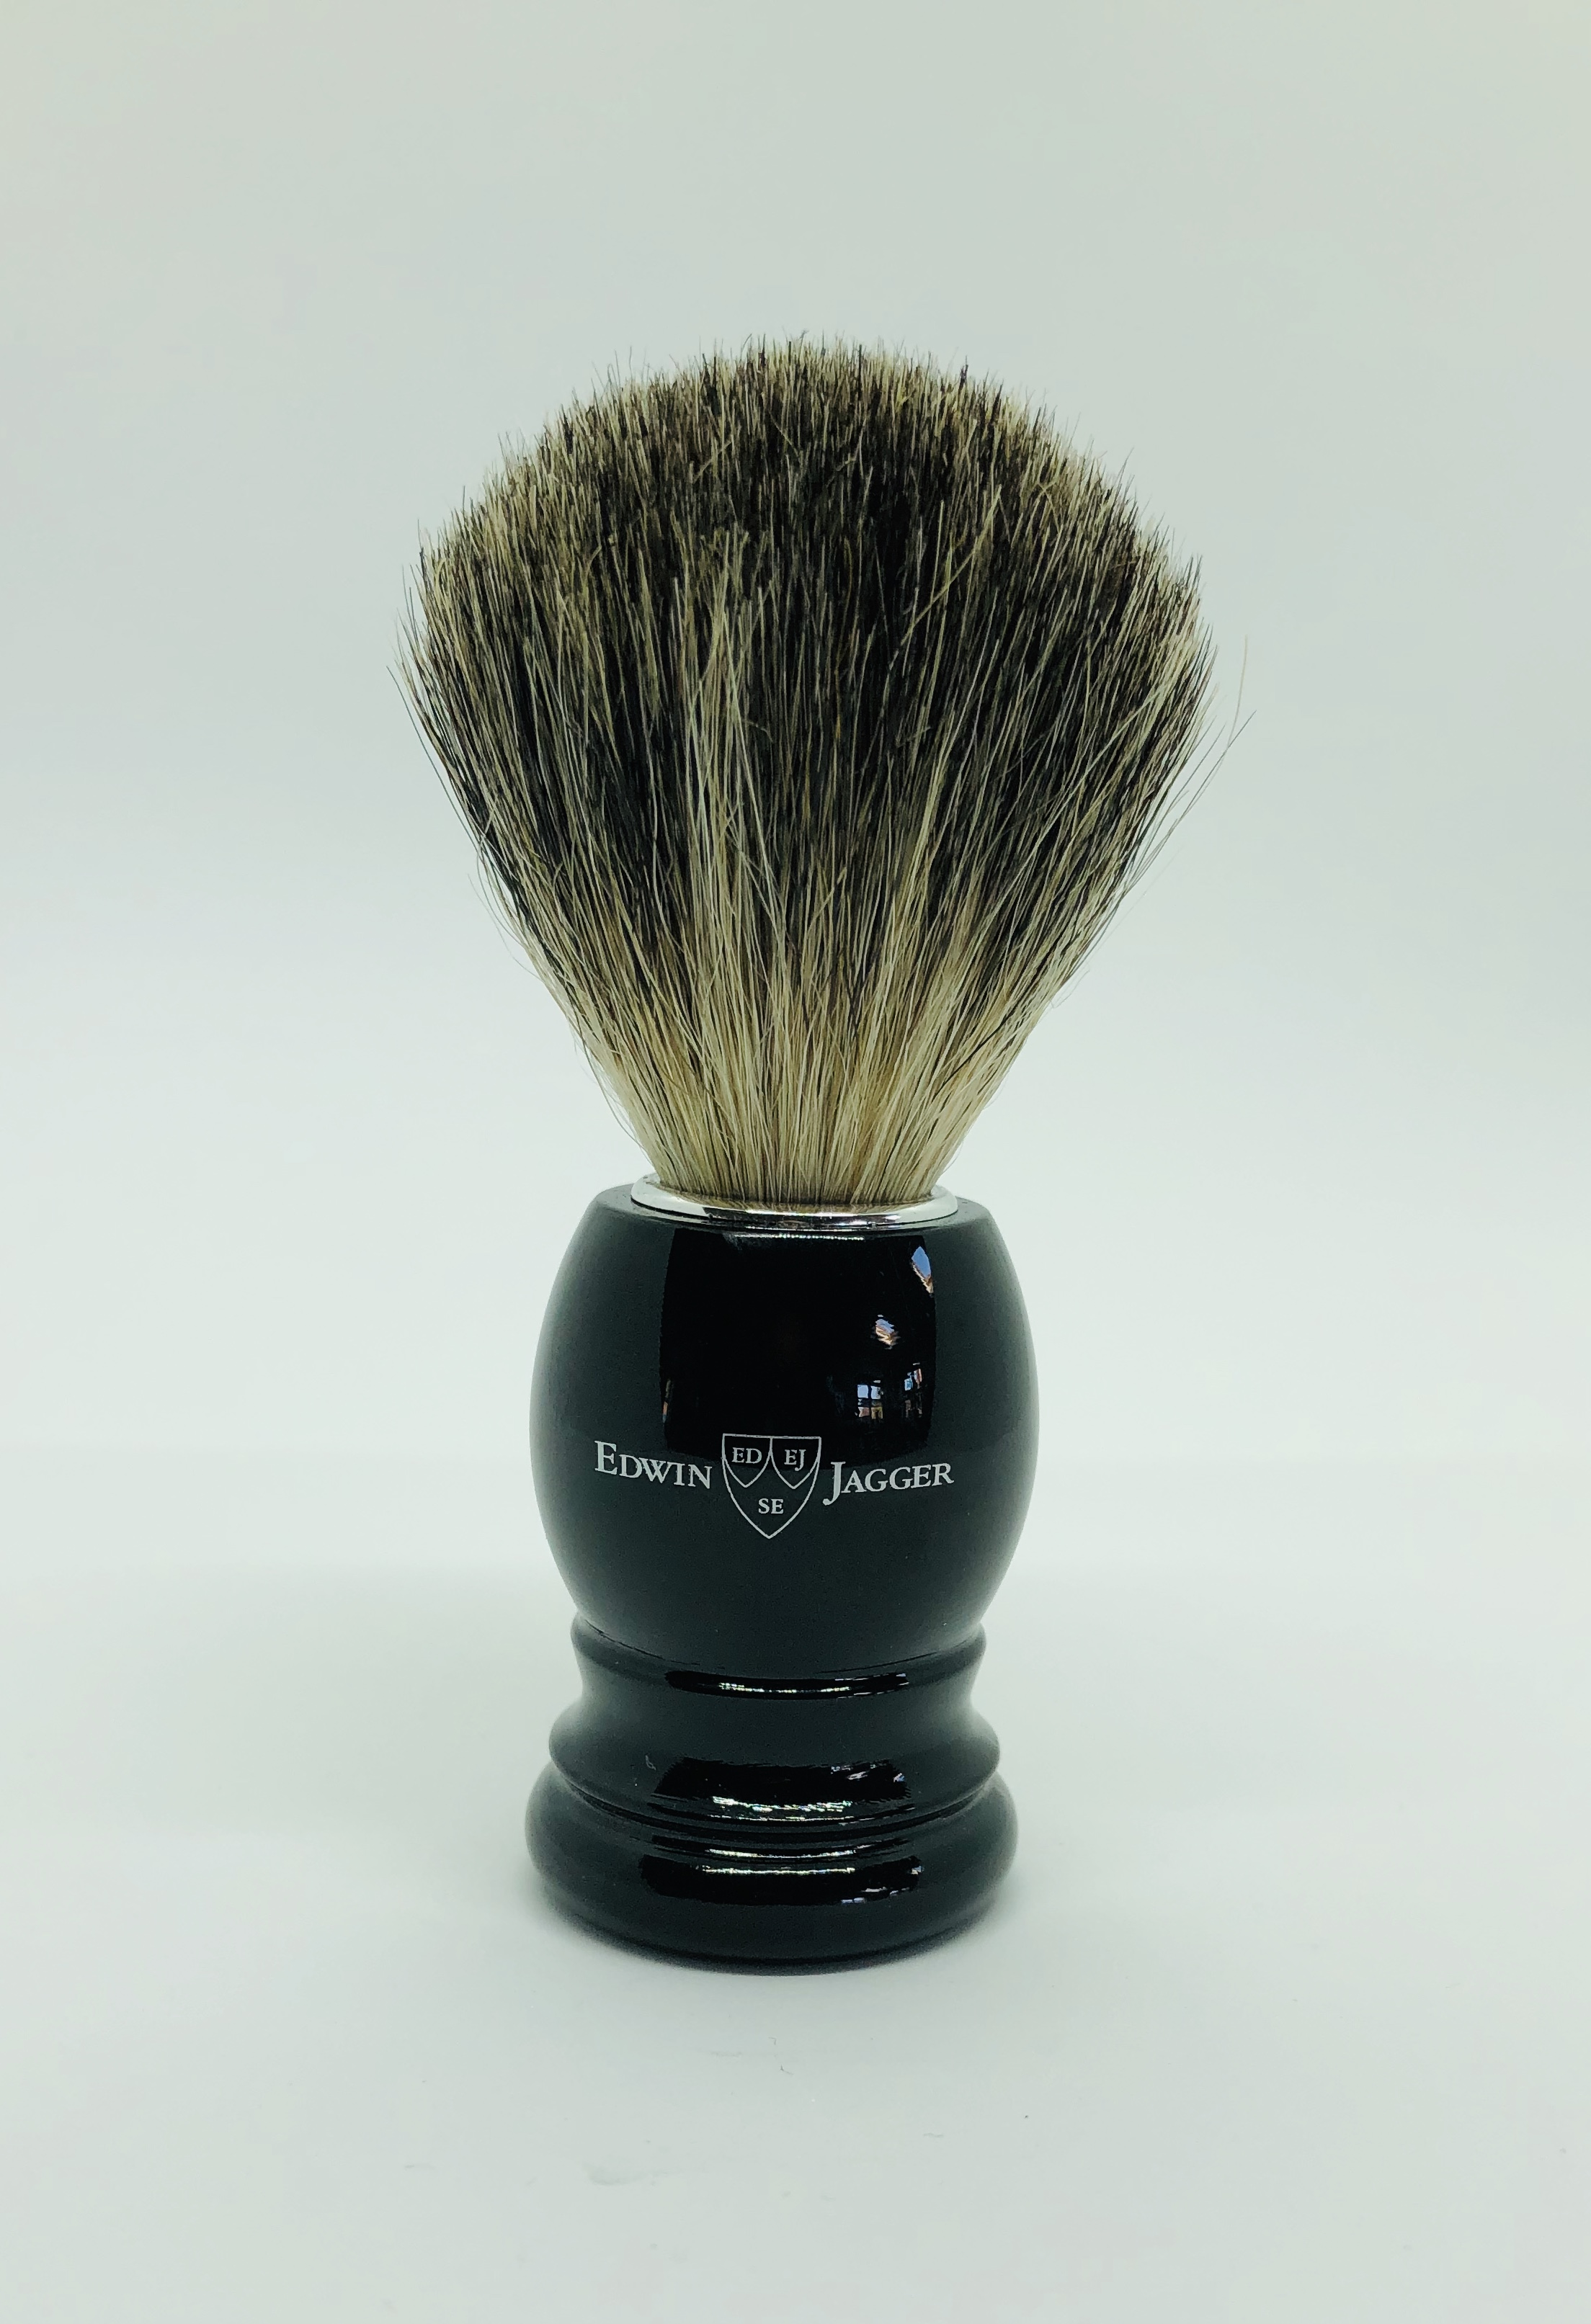 Edwin Jagger brush pure badger (no chrome)